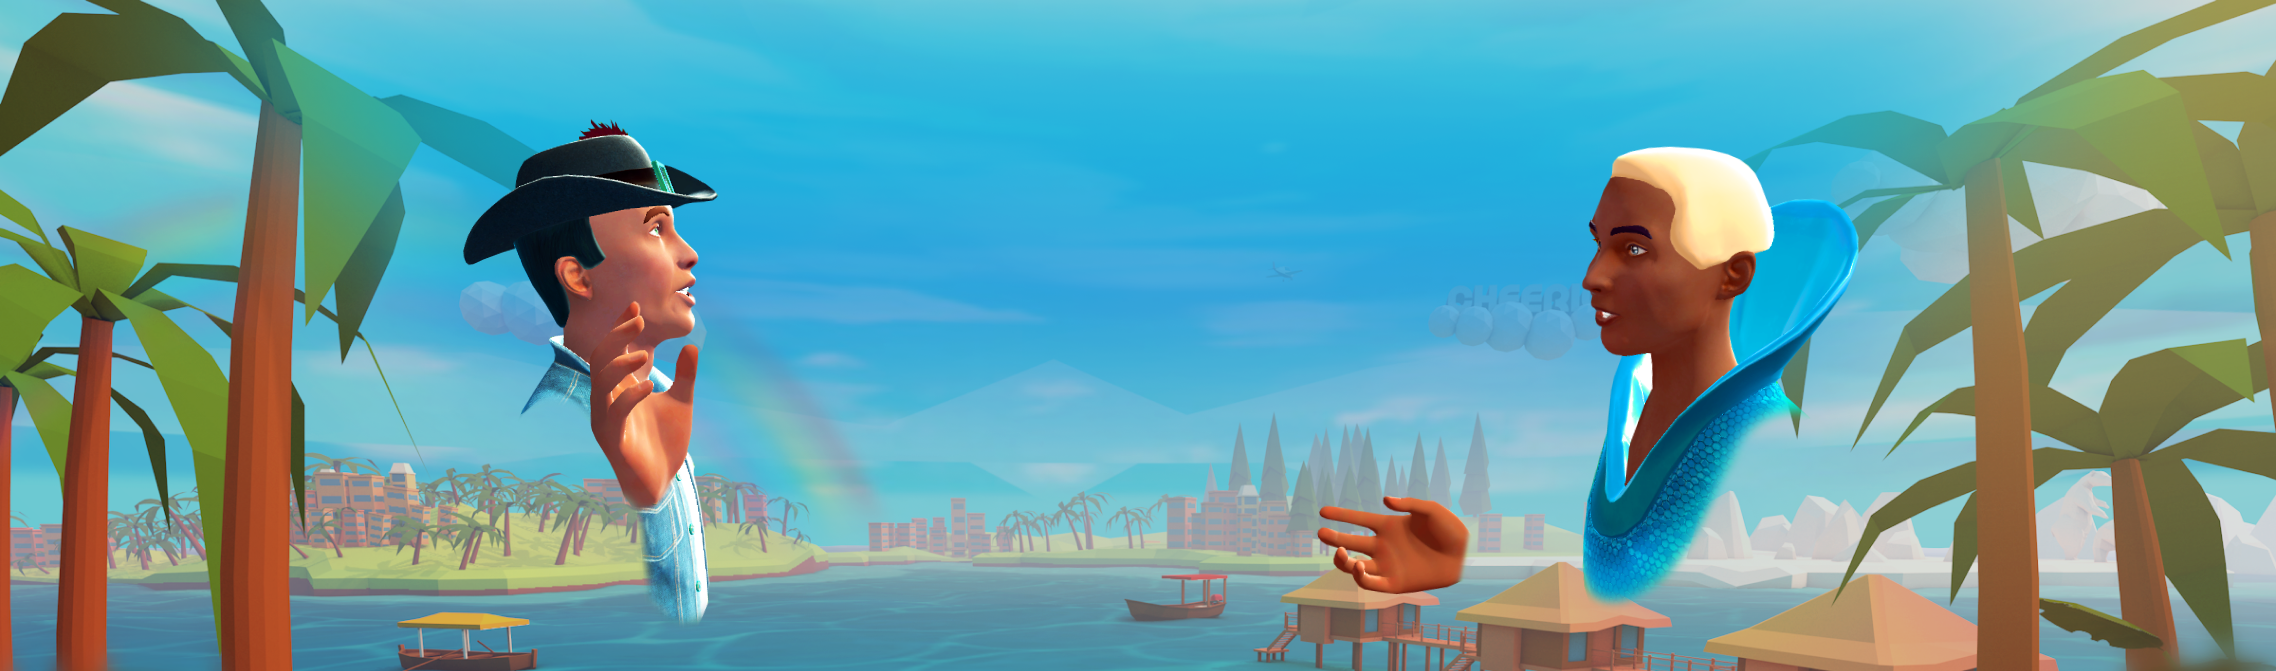 Hero banner image. Limitless relationships. Social VR. Available on Oculus Quest.